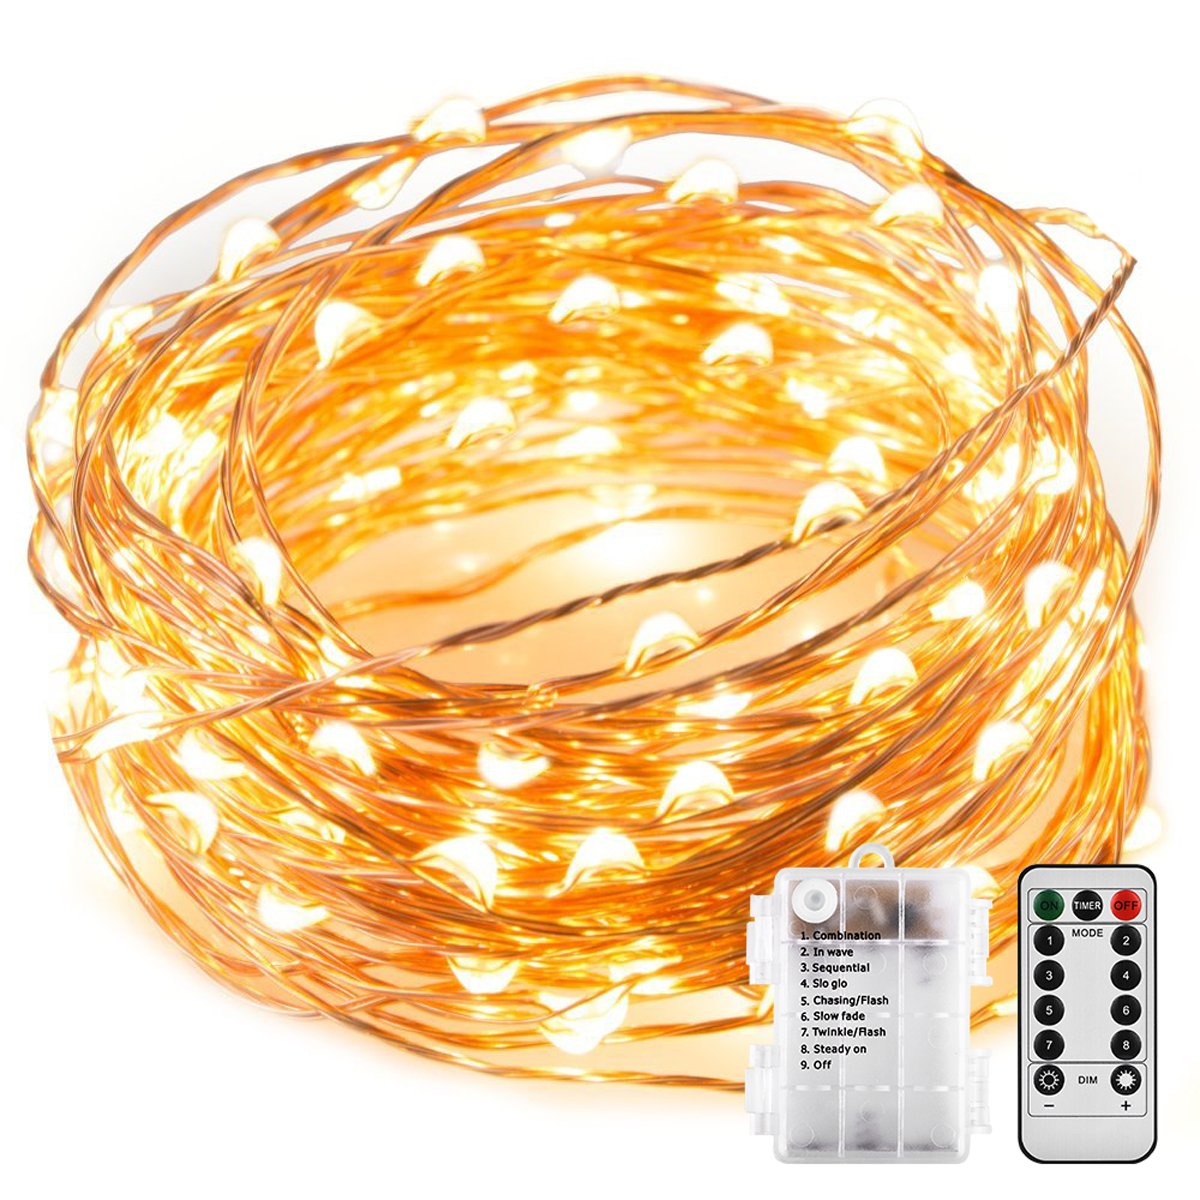 String Lights, Sanniu Battery String Lights Waterproof Design 16ft 50 LED,String Lights Battery with Remote Control 8 Modes Warm White by Sanniu